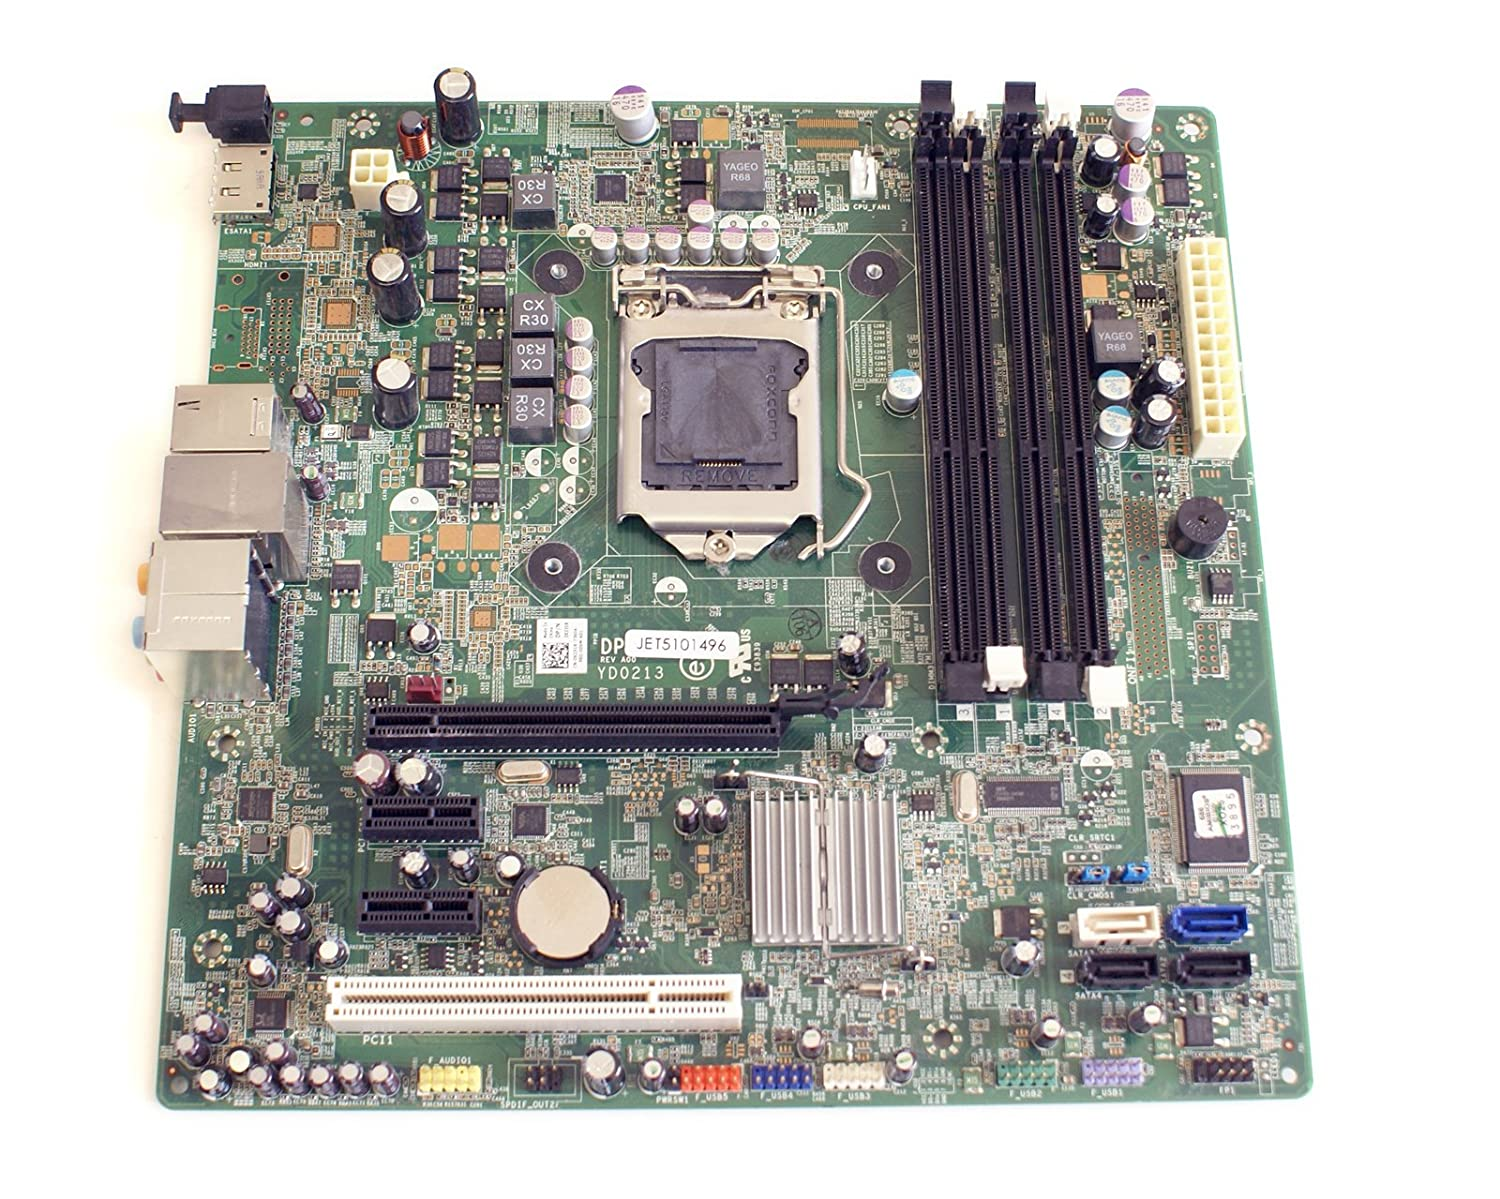 81CwsSwcKML._SL1500_ amazon com genuine x231r,0x231r dell motherboard mainboard for  at edmiracle.co